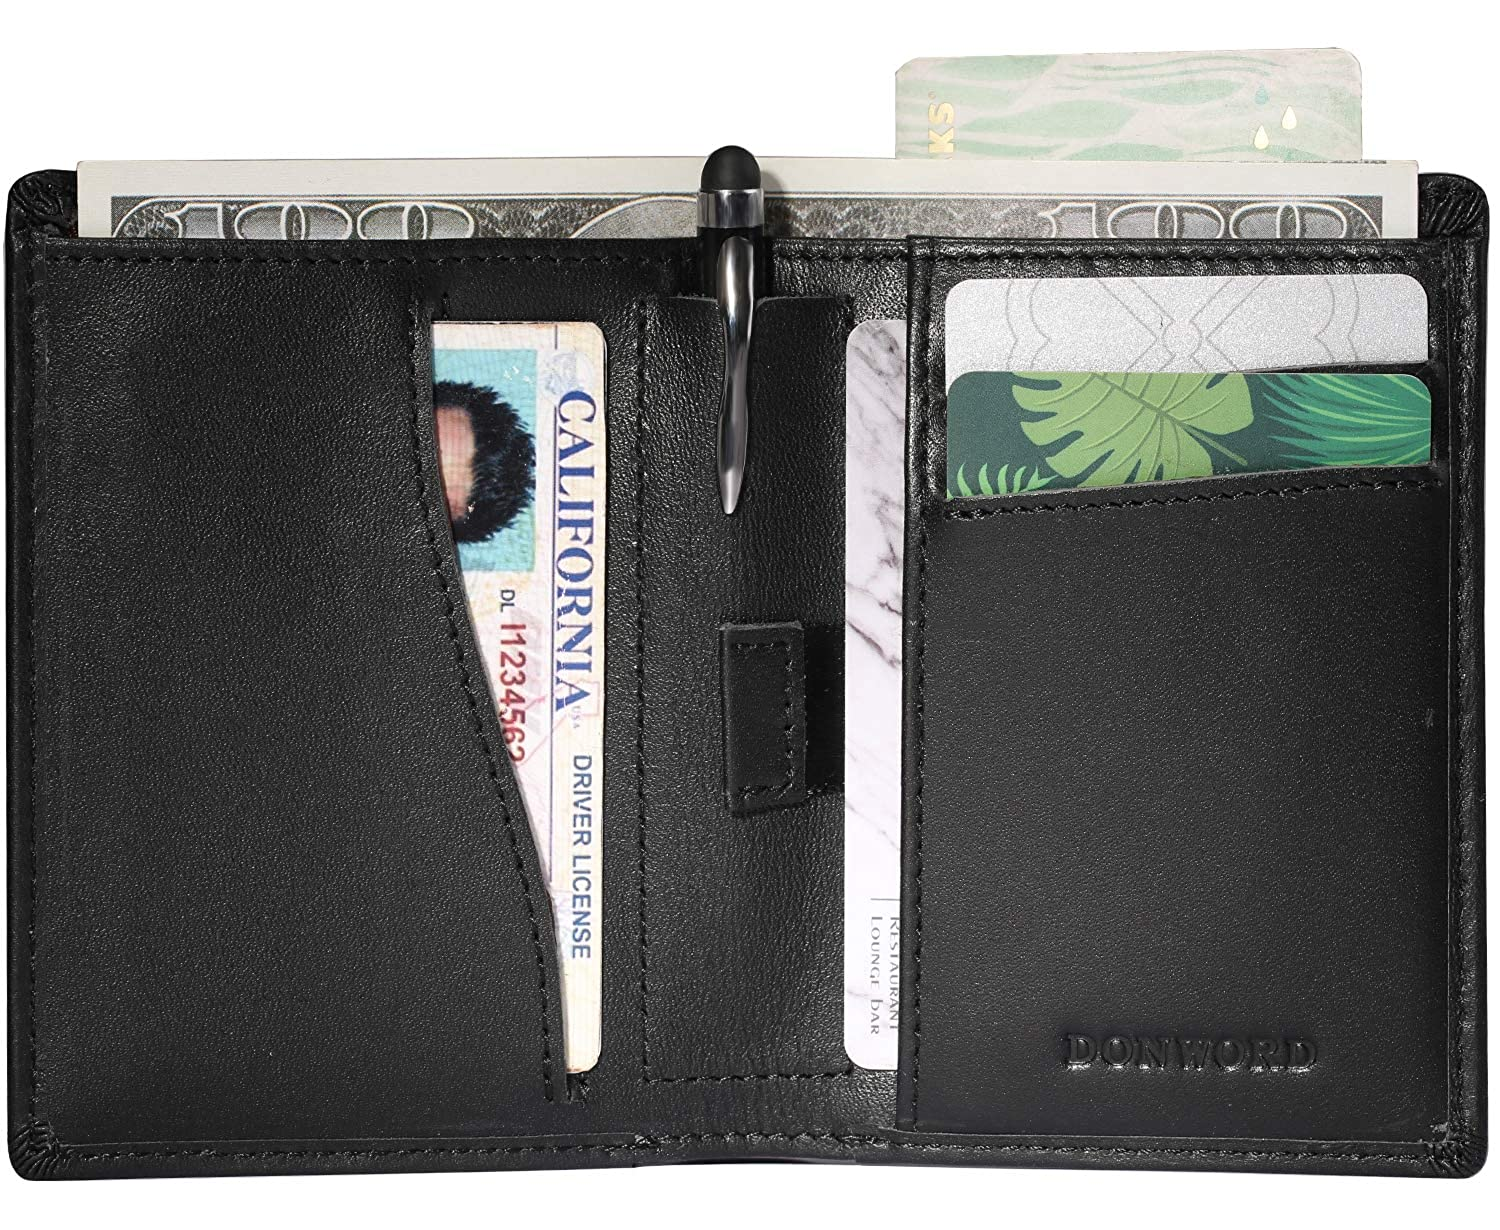 5413aa5a5125 Slim Bifold Wallet RFID Blocking with Stylus Pen holder, Awesome Men  Leather Front Pocket Minimalist Wallet Money clip